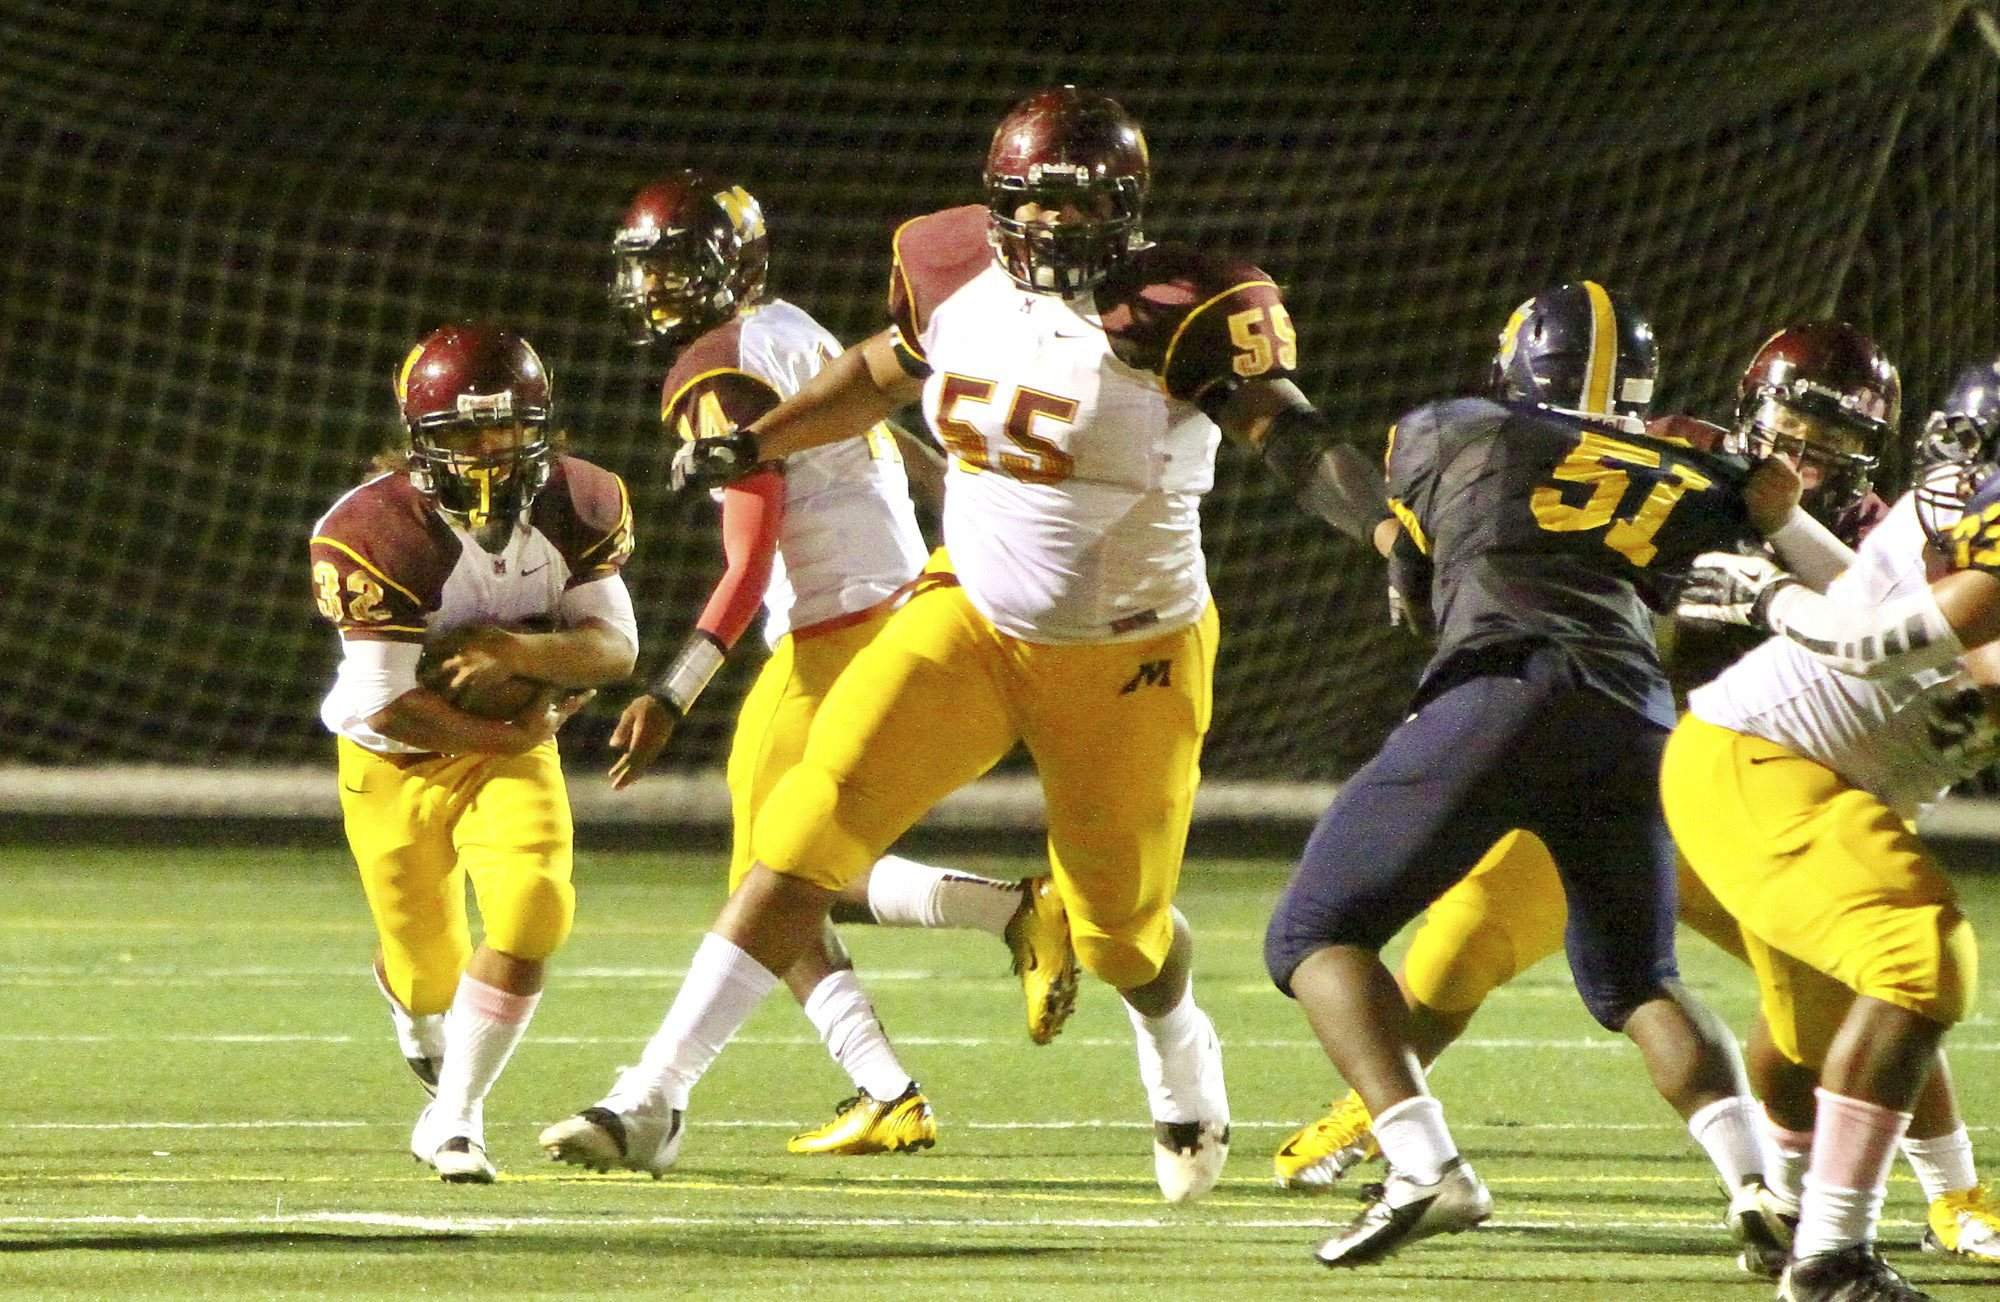 Bishop McNamara offensive tackle Damian Prince should start as a freshman and is the biggest Maryland commit since wide receiver Stefon Diggs. (Mandatory Credit: George P. Smith/The Gazette)